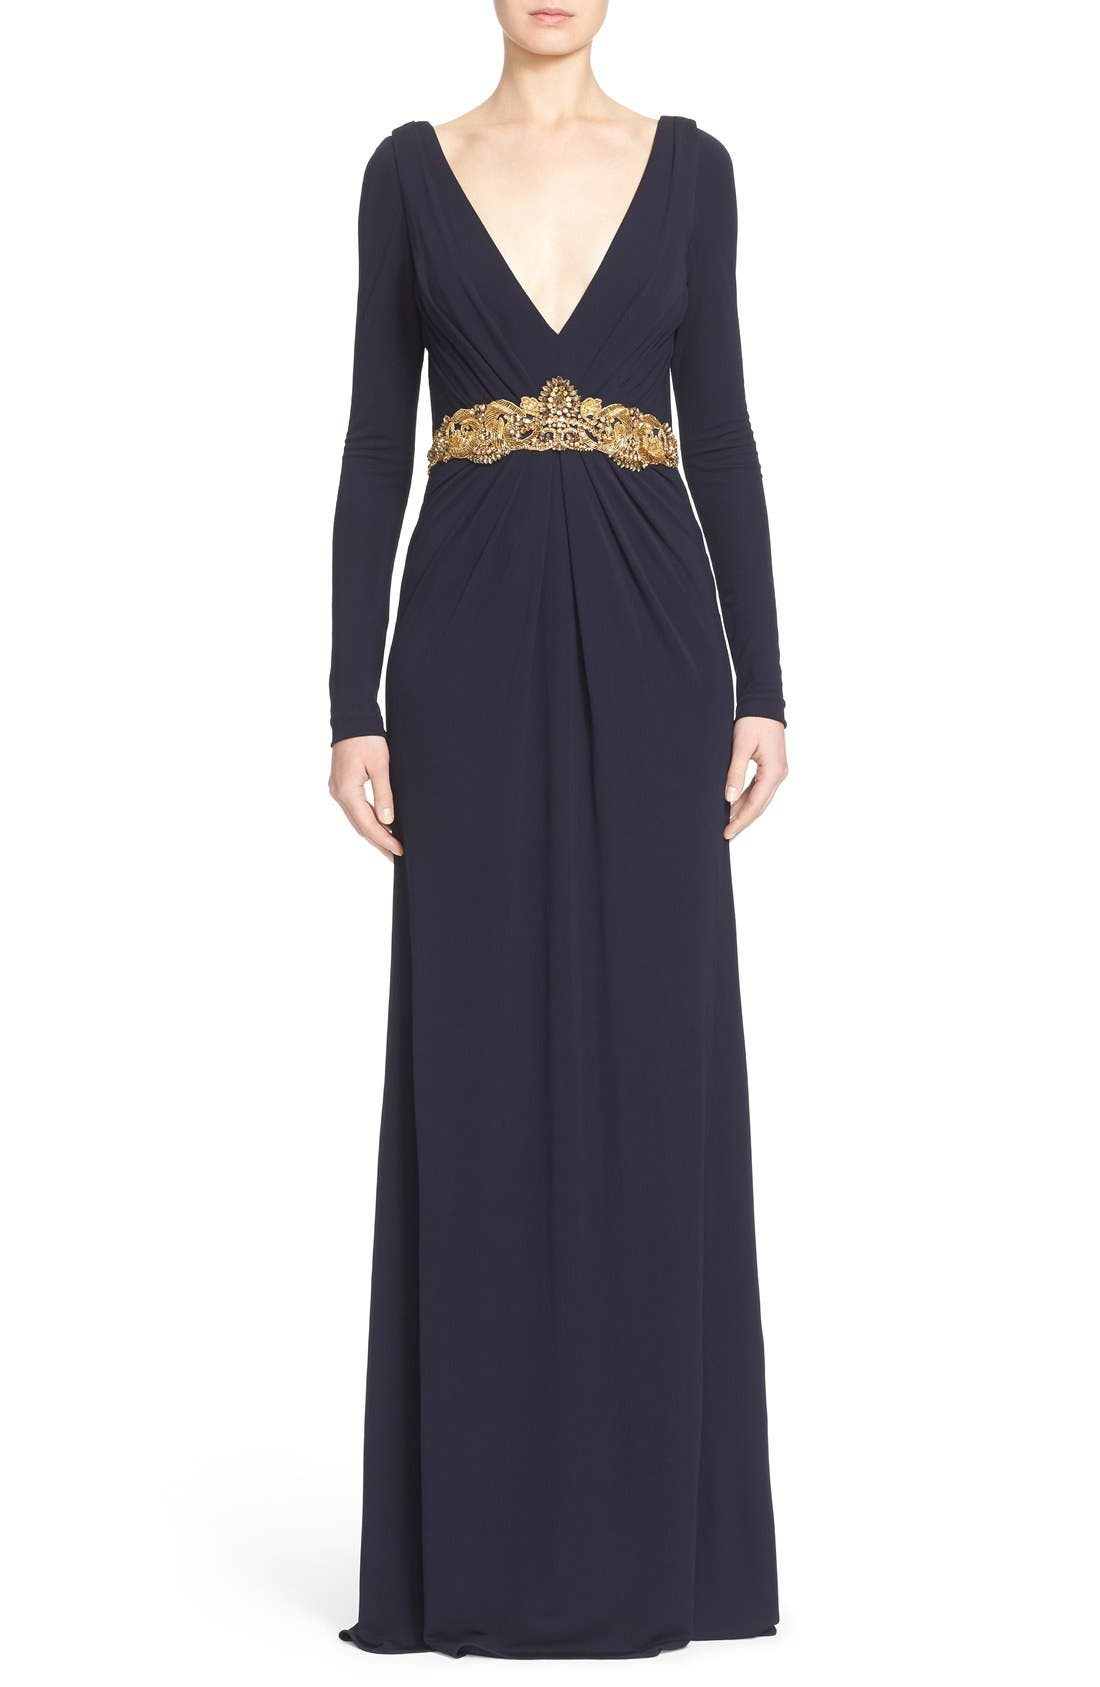 BADGLEY MISCHKA Couture Embellished Waist Plunging V-Neck Jersey